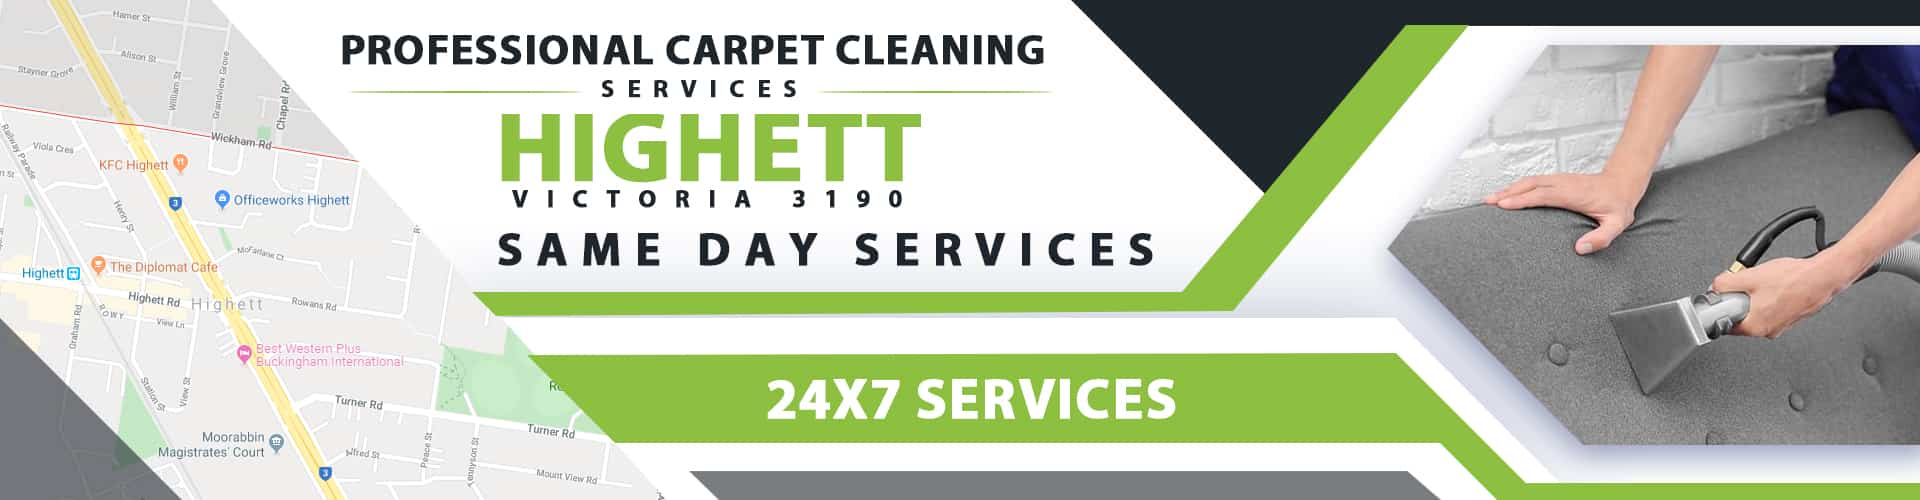 Upholstery Cleaning Highett